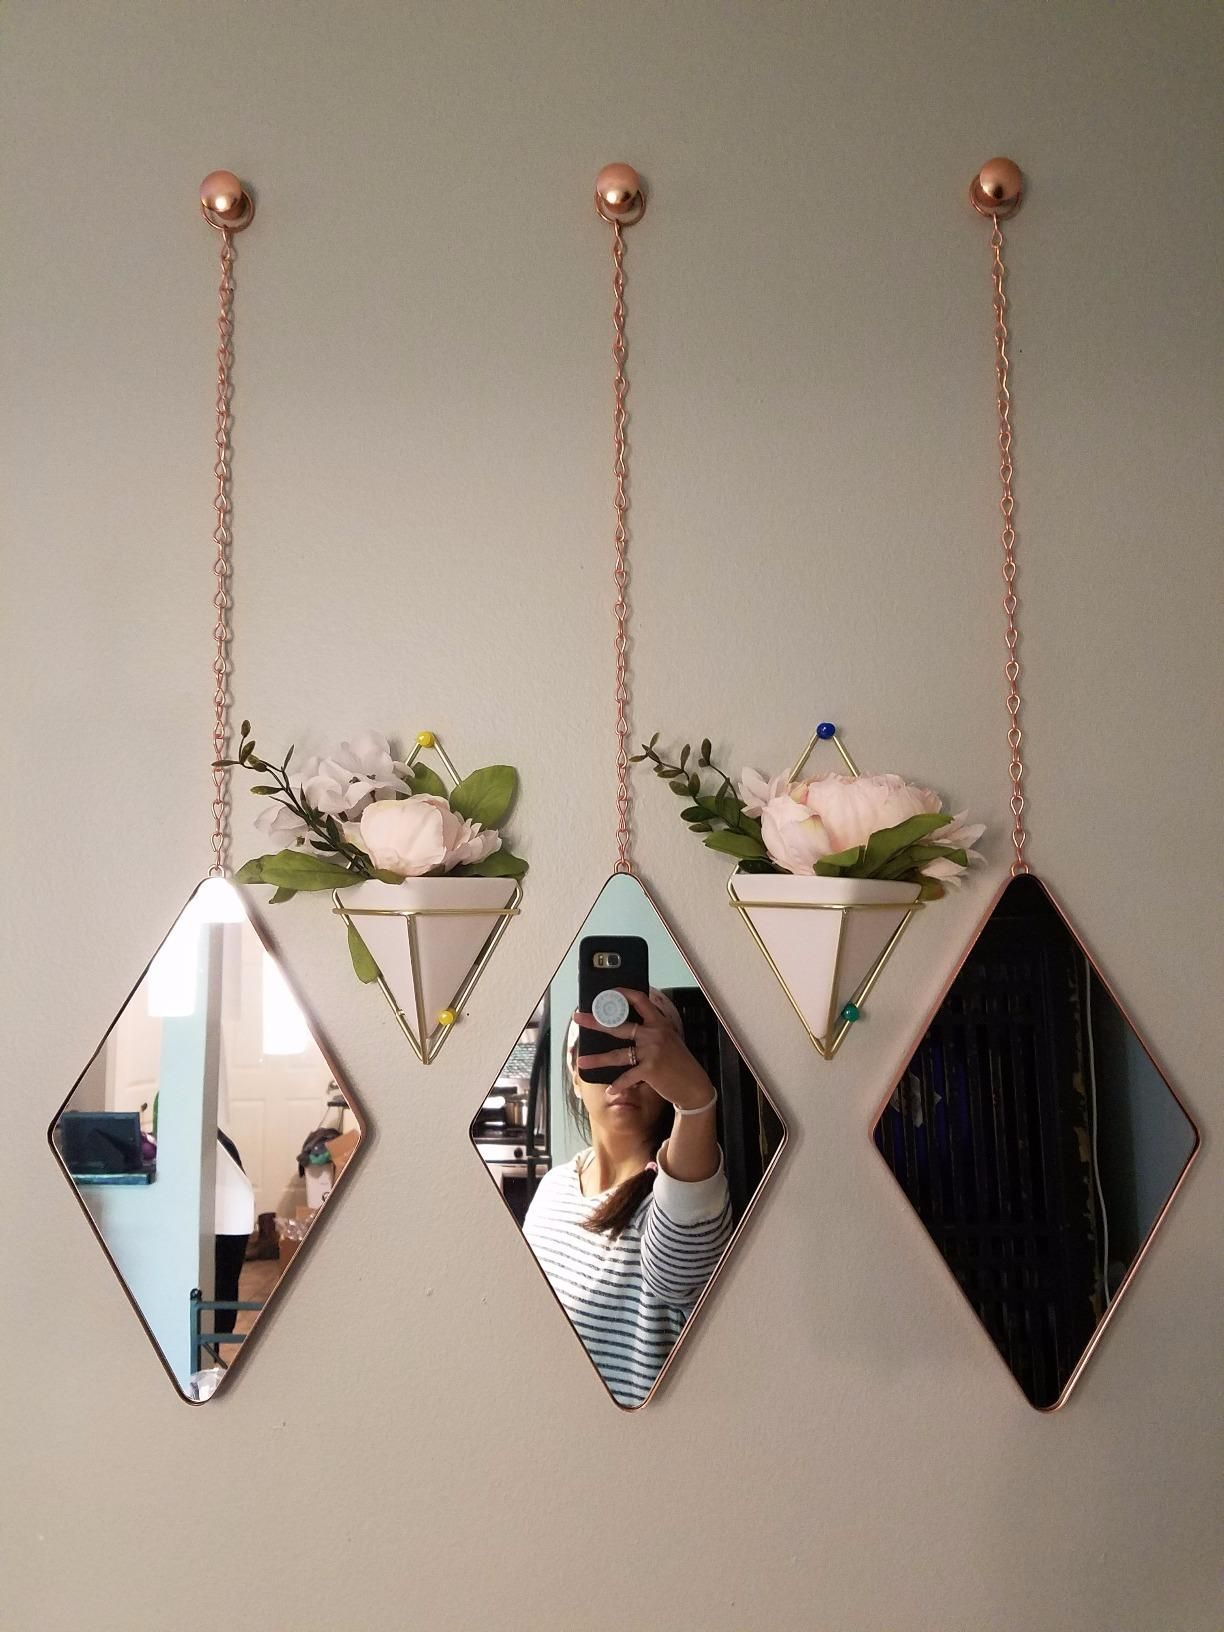 Well Known Amazonsmile: Umbra Trigg Hanging Planter Vase & Geometric Wall Decor Intended For 2 Piece Trigg Wall Decor Sets (Set Of 2) (View 19 of 20)